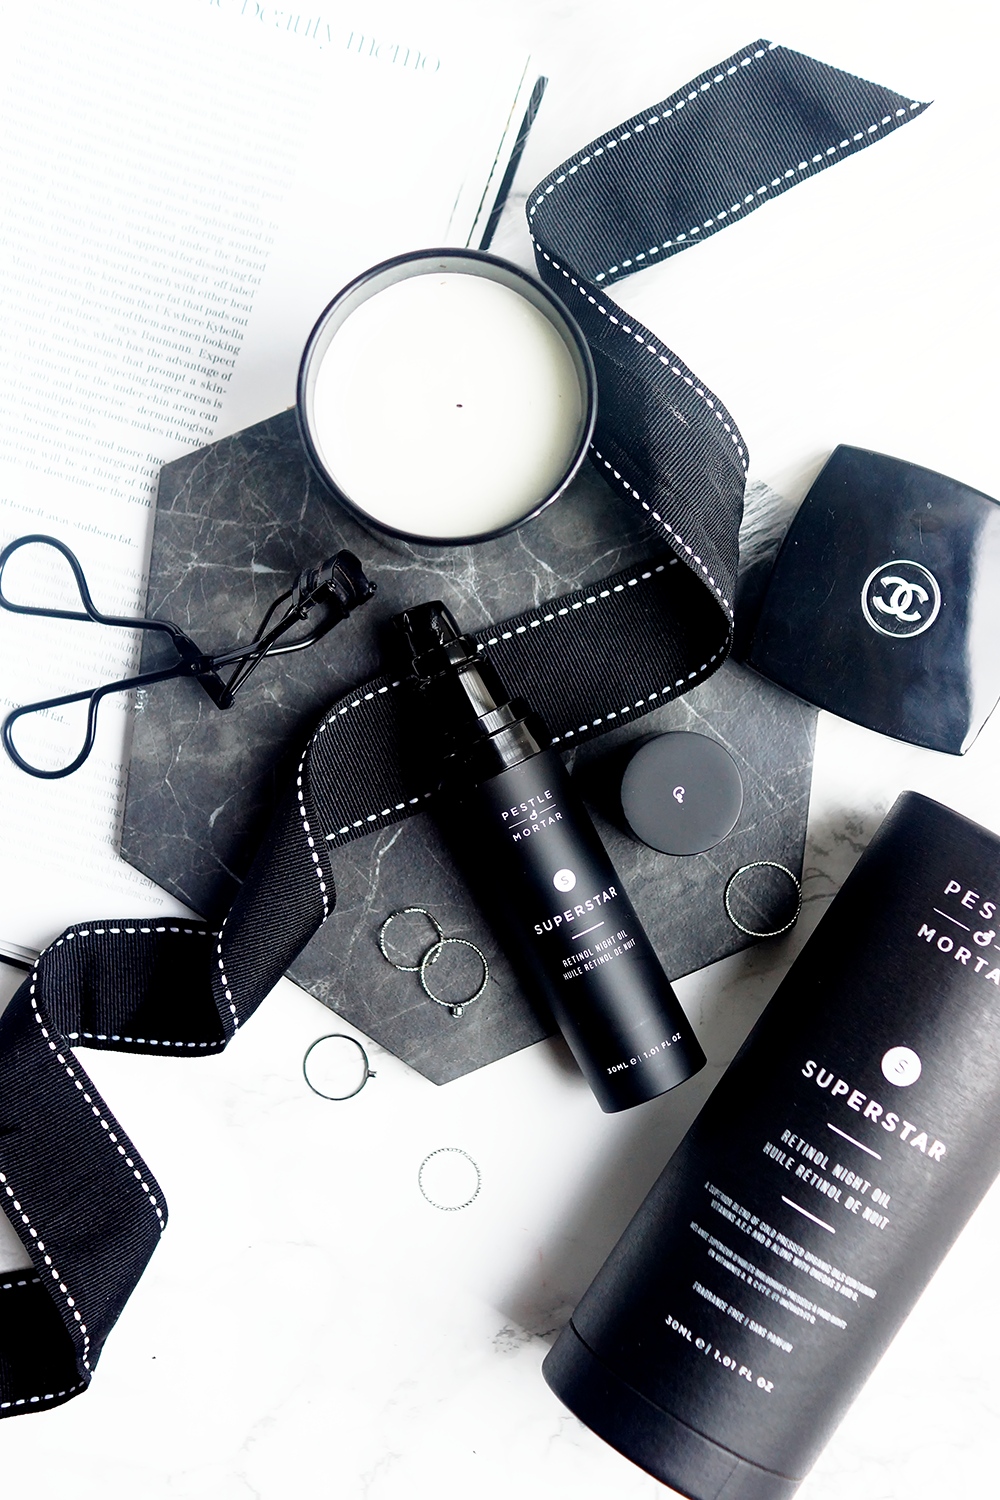 pestle-mortar-superstar-retinol-oil-review-barely-there-beauty-blog